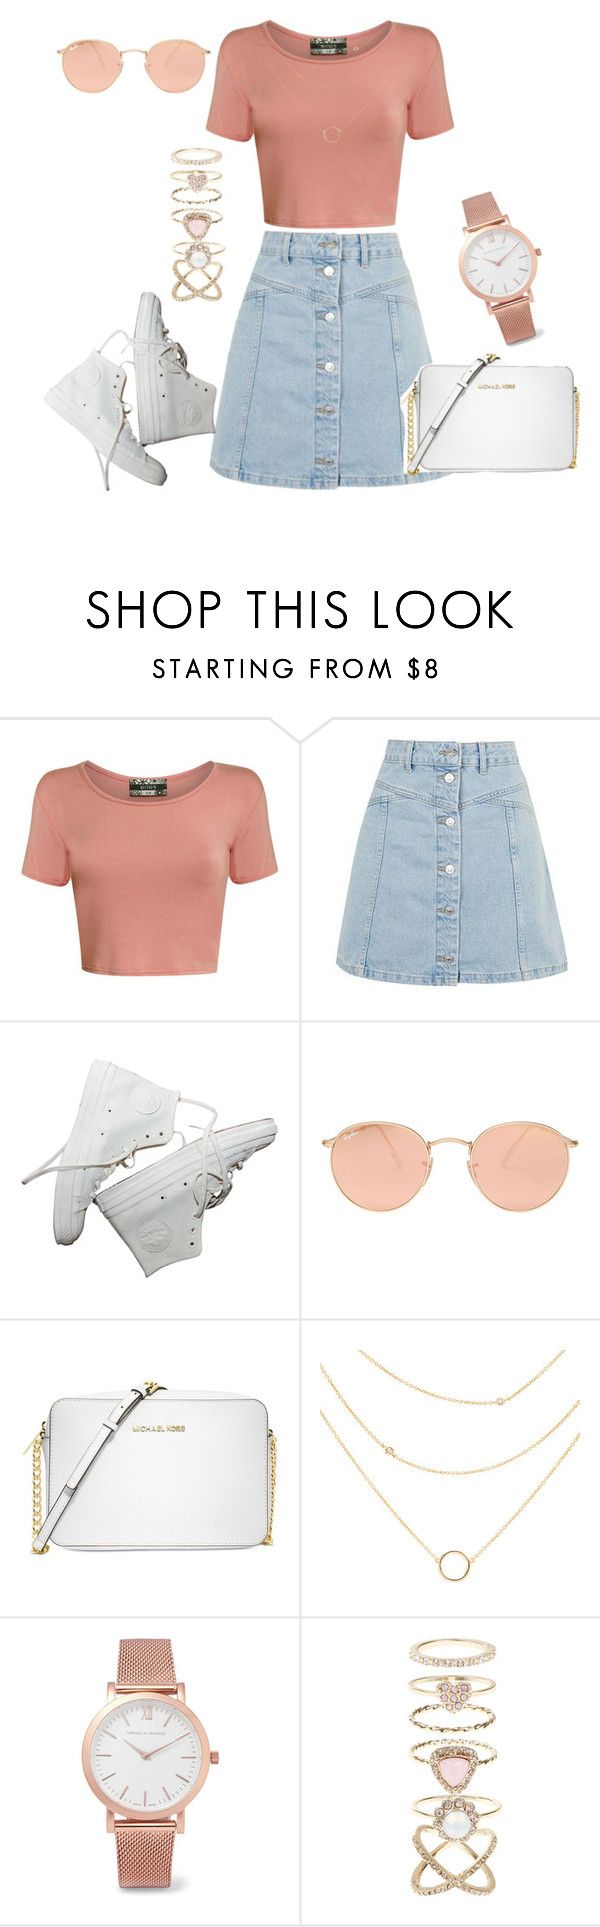 """""""Untitled #316"""" by charlotte-down on Polyvore featuring Pilot, Topshop, Ray-Ban, Michael Kors, Larsson & Jennings and Accessorize"""